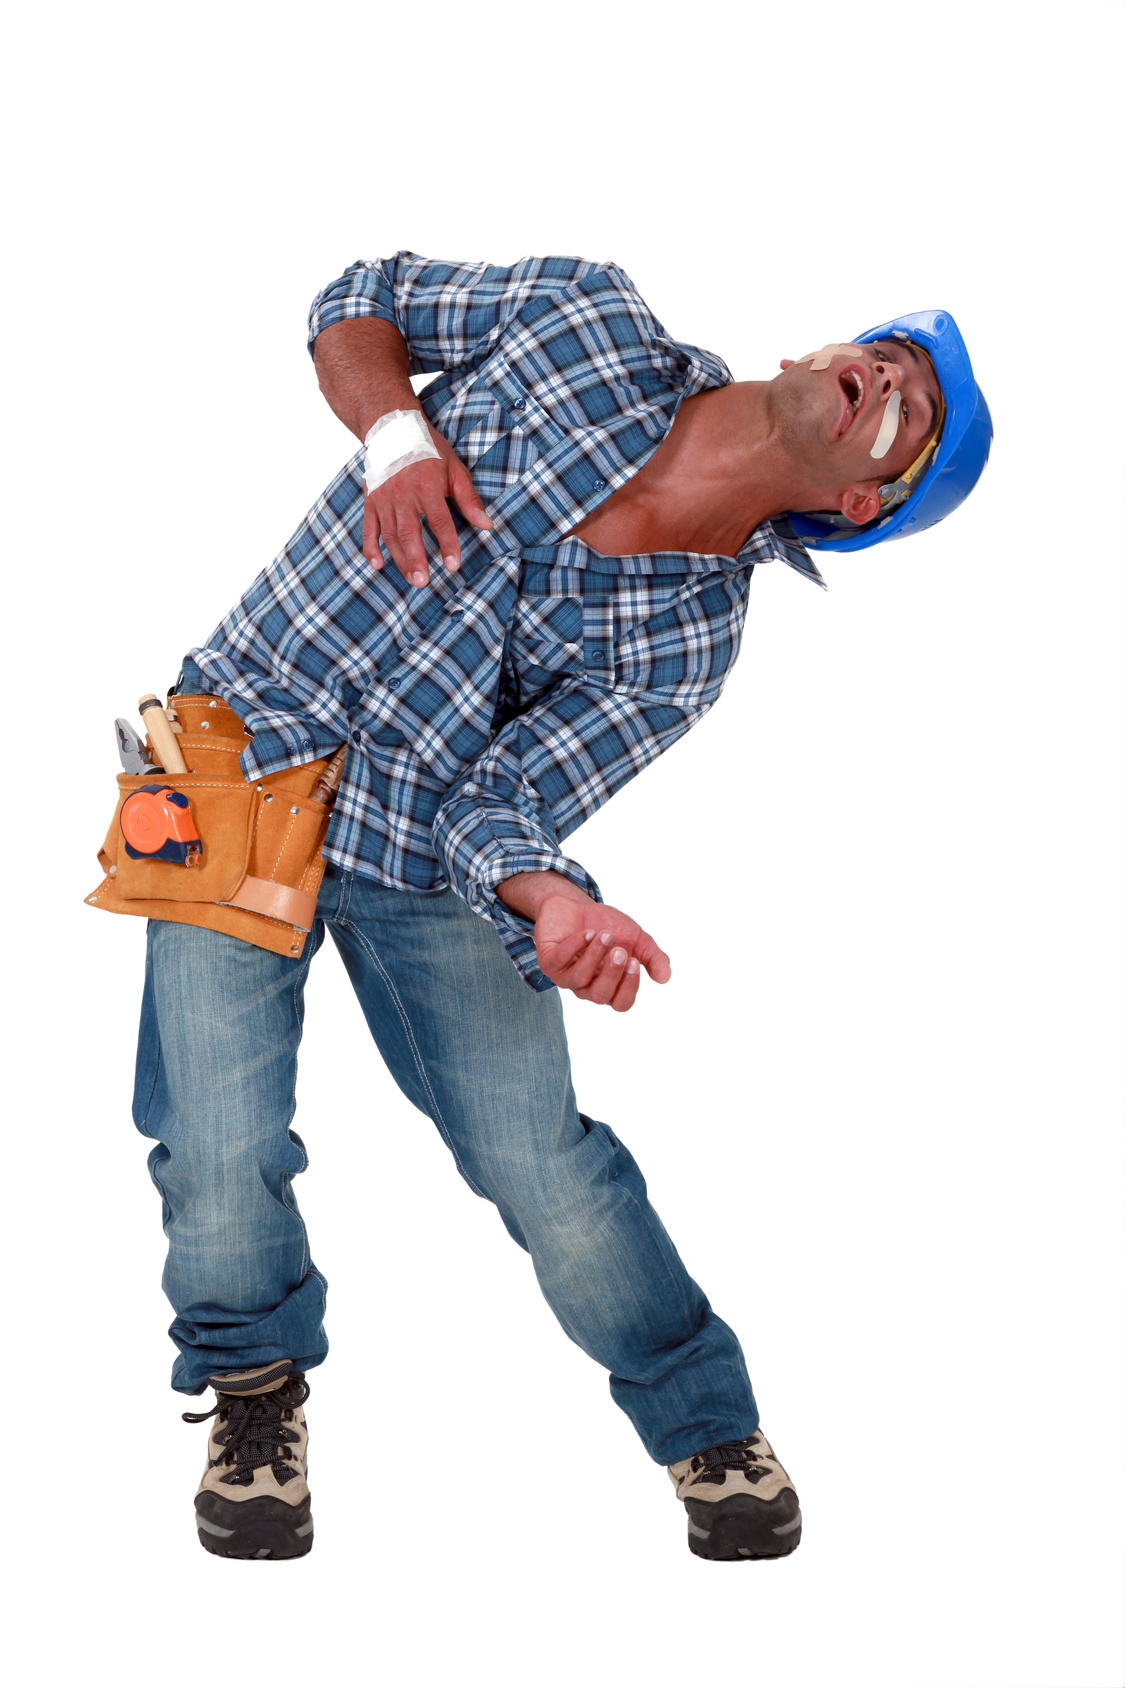 Construction guy in pain